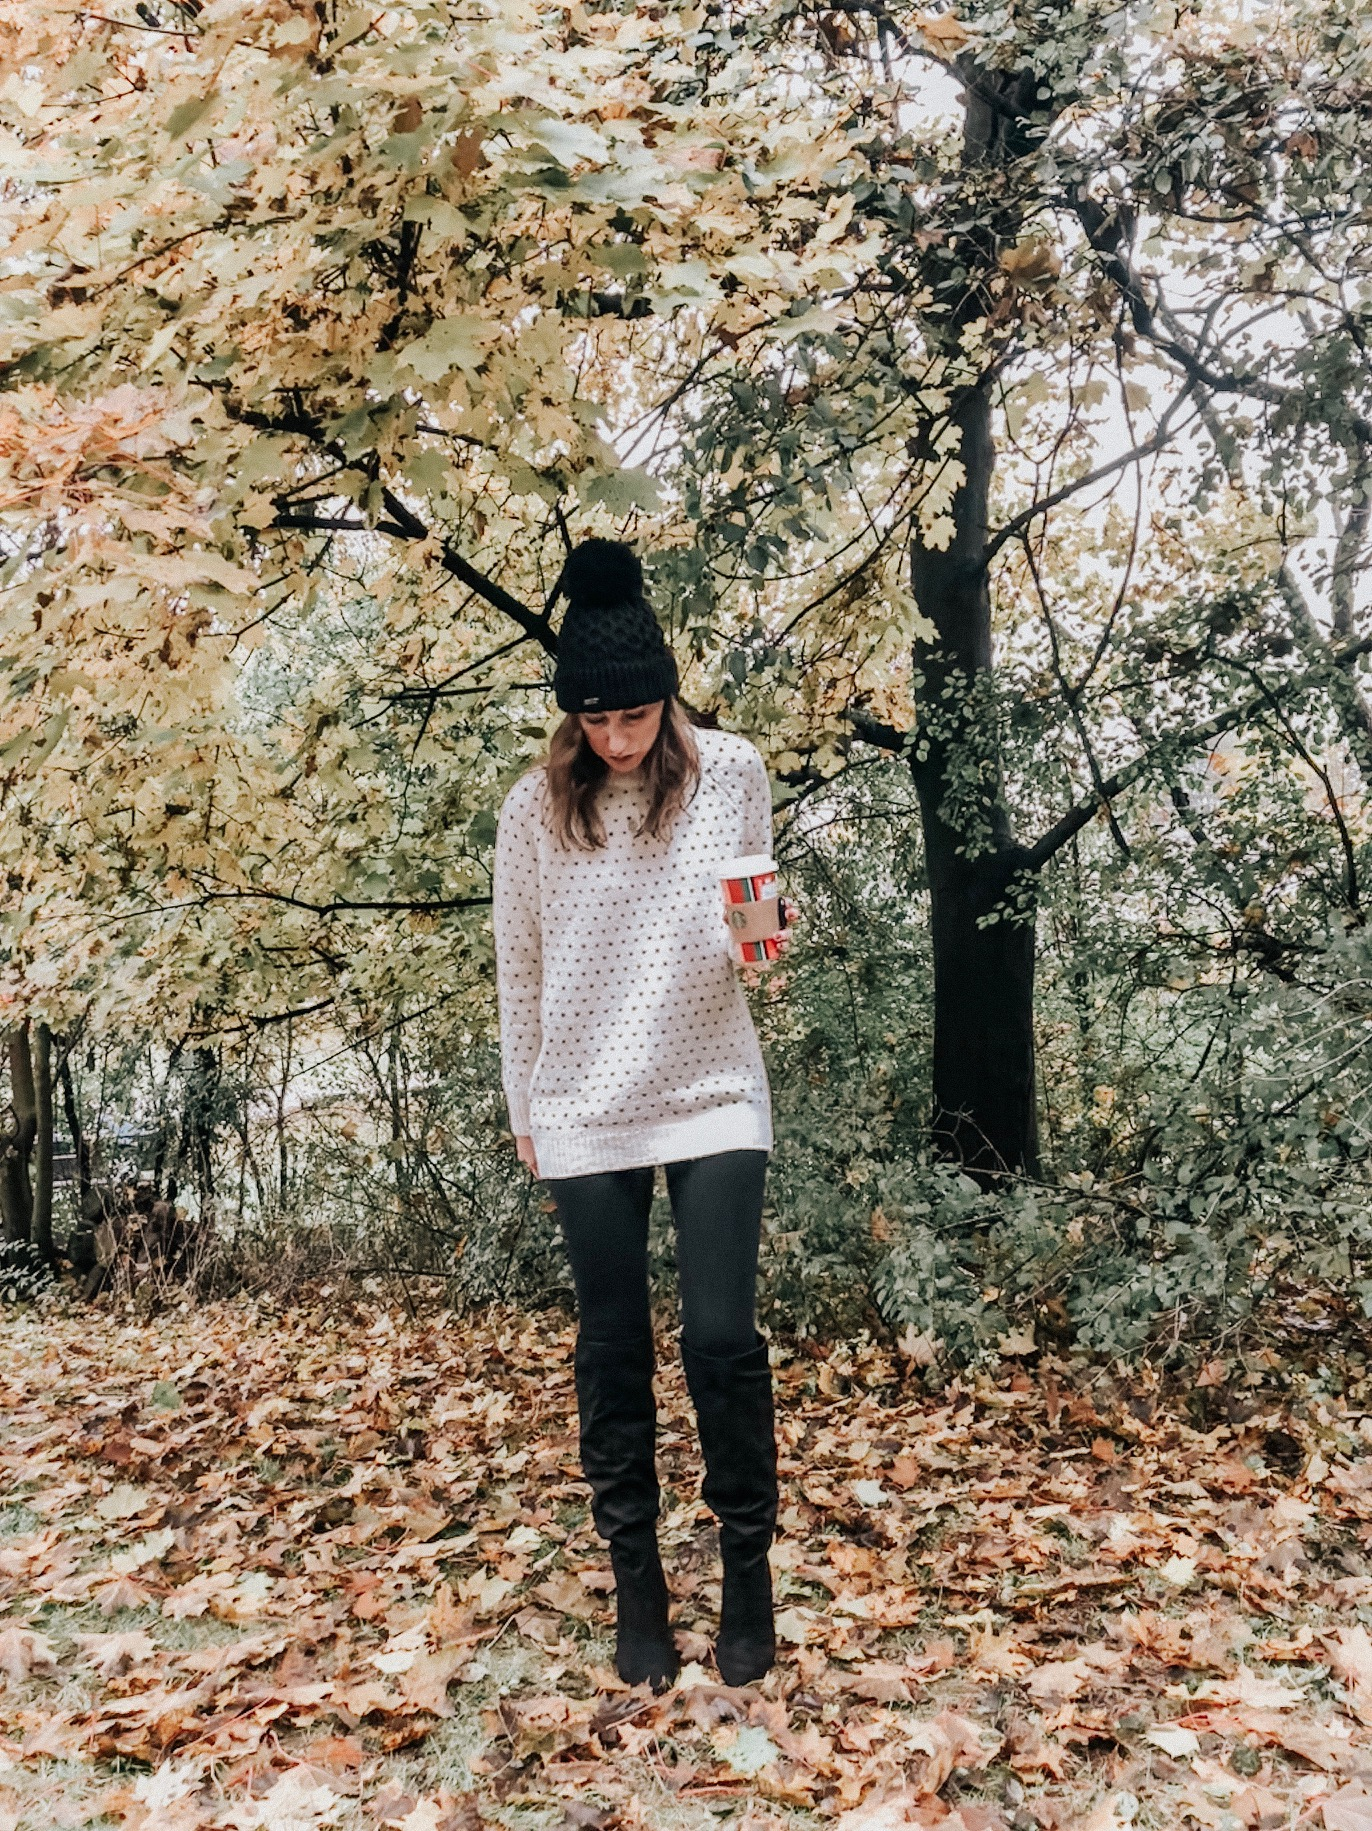 Cozy Winter Style | Daily Splendor Life and Style Blog || sweater, leggings, boots, winter, #winterstyle #winterfashion #sweaterweather #fashionblog